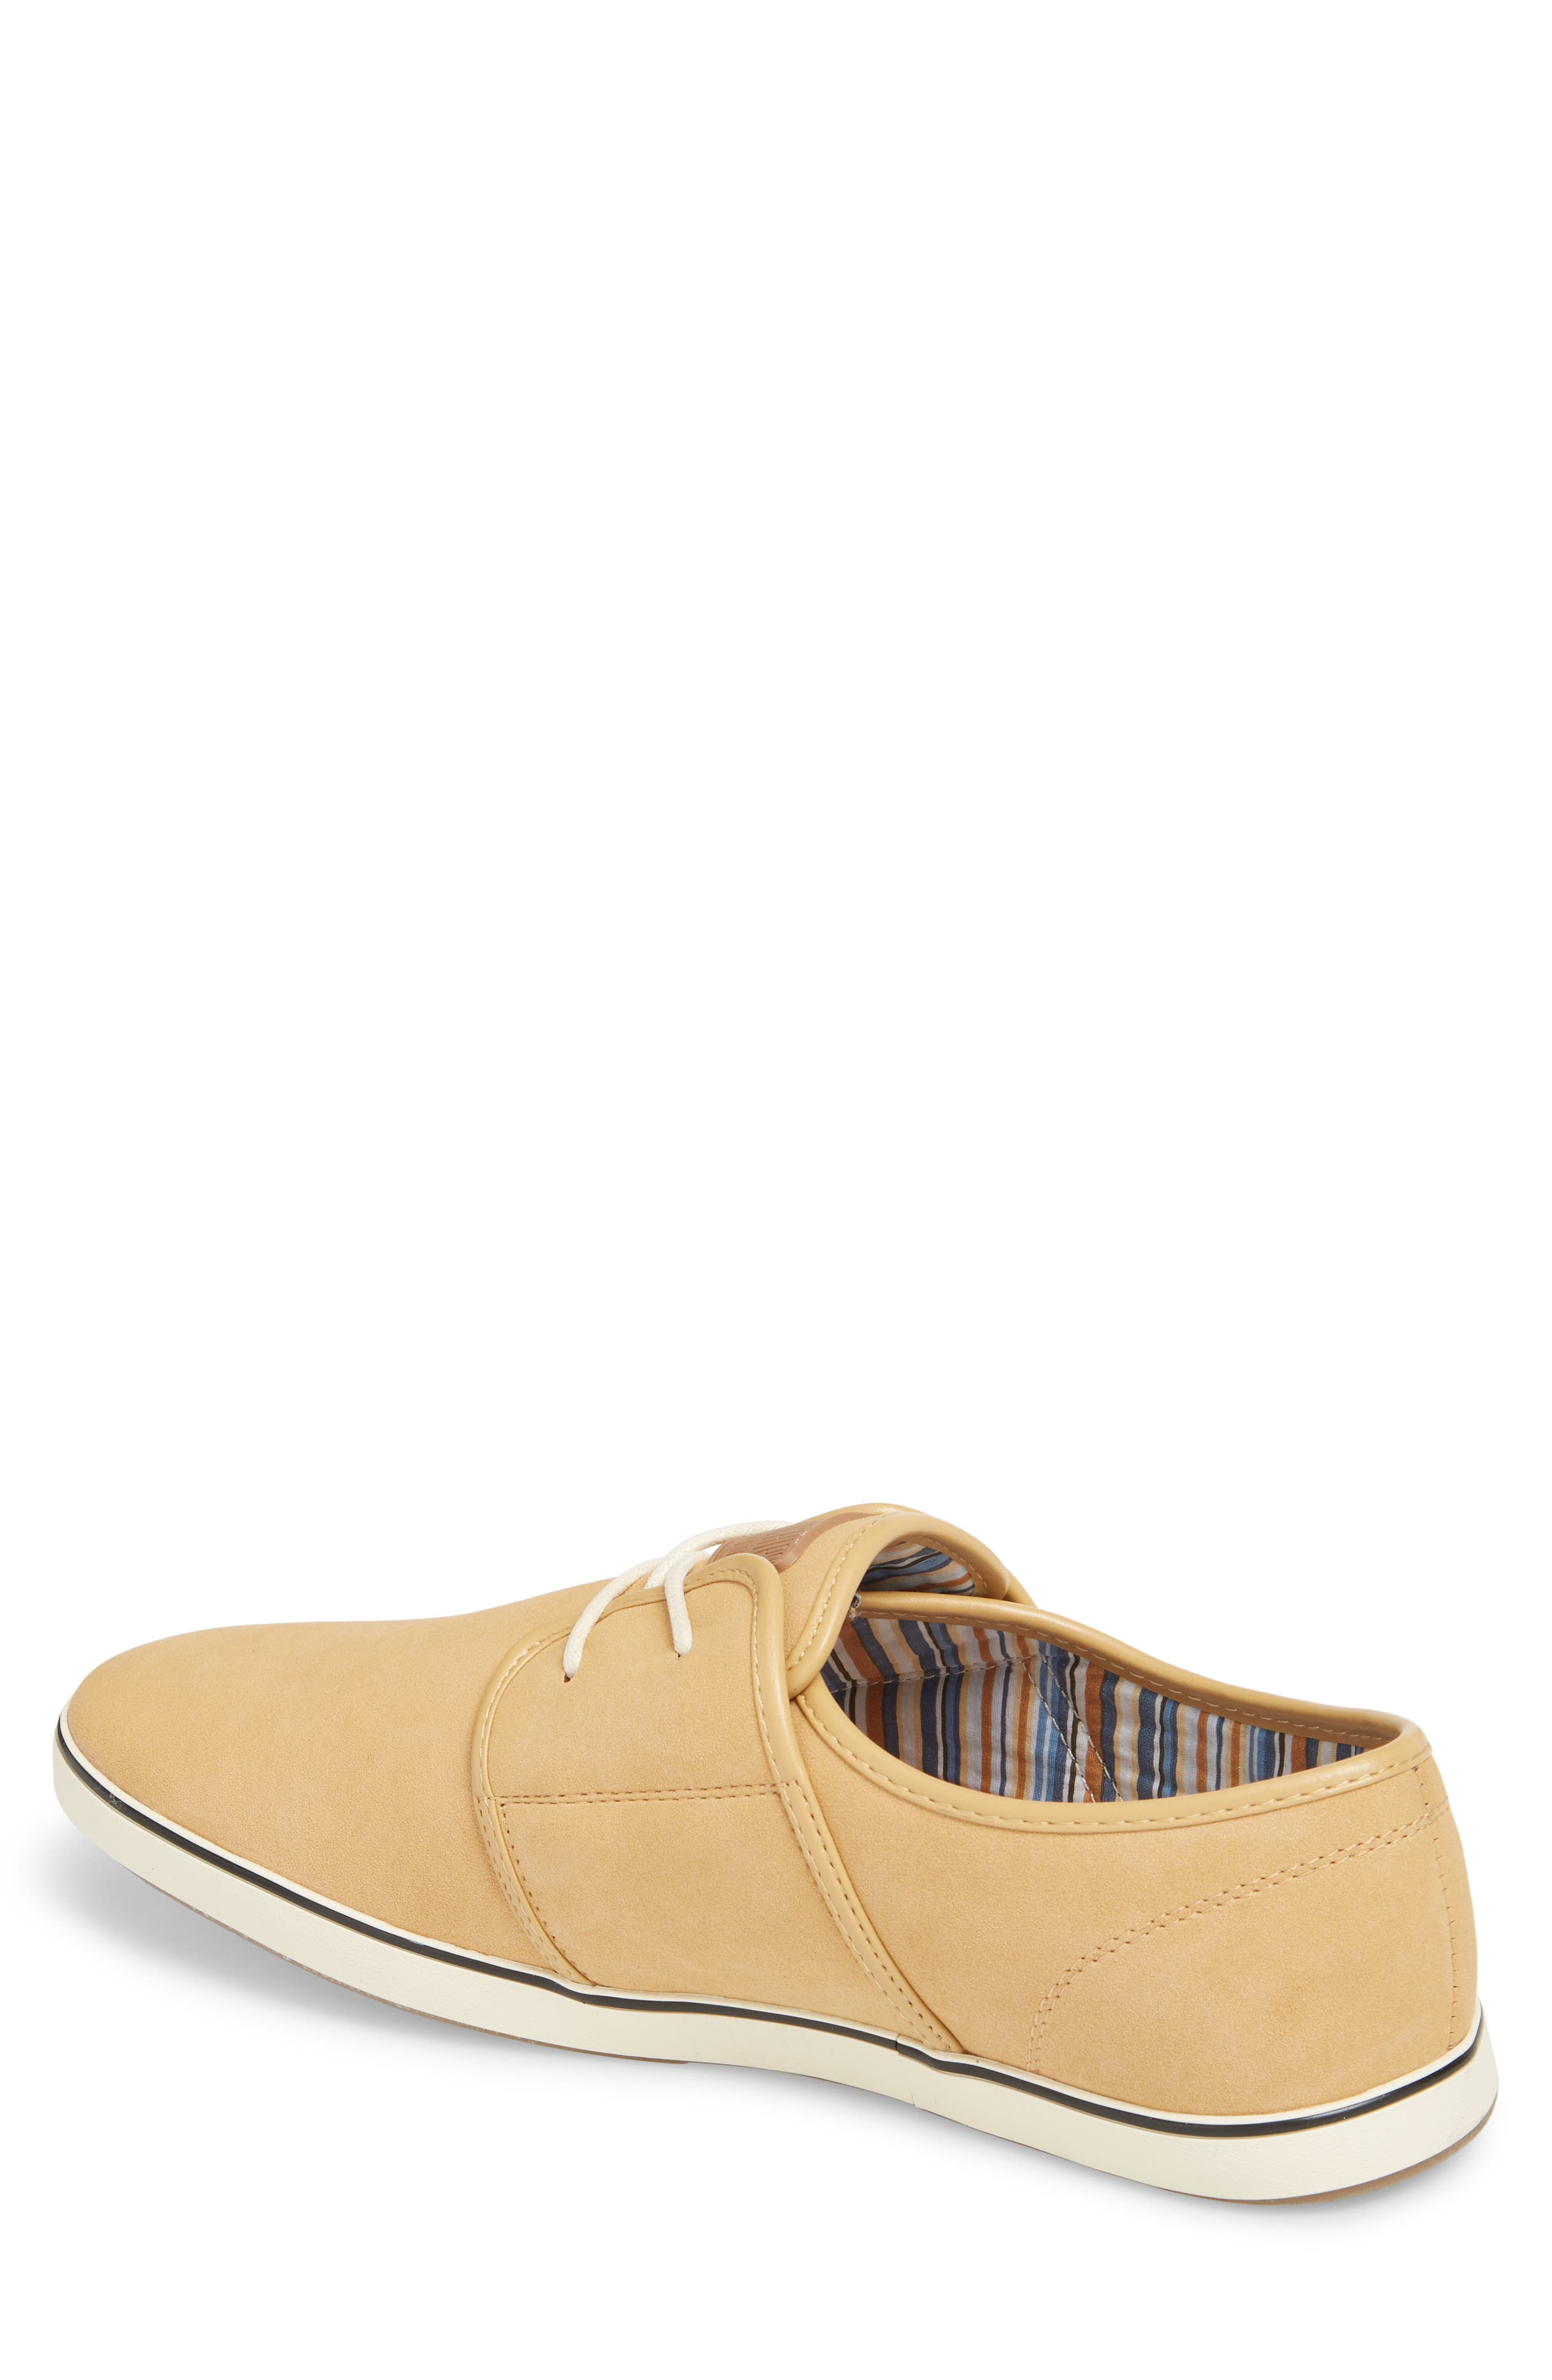 Fish 'N' Chips Surrey Low Top Sneaker,                             Alternate thumbnail 2, color,                             SOFT BROWN FAUX SUEDE